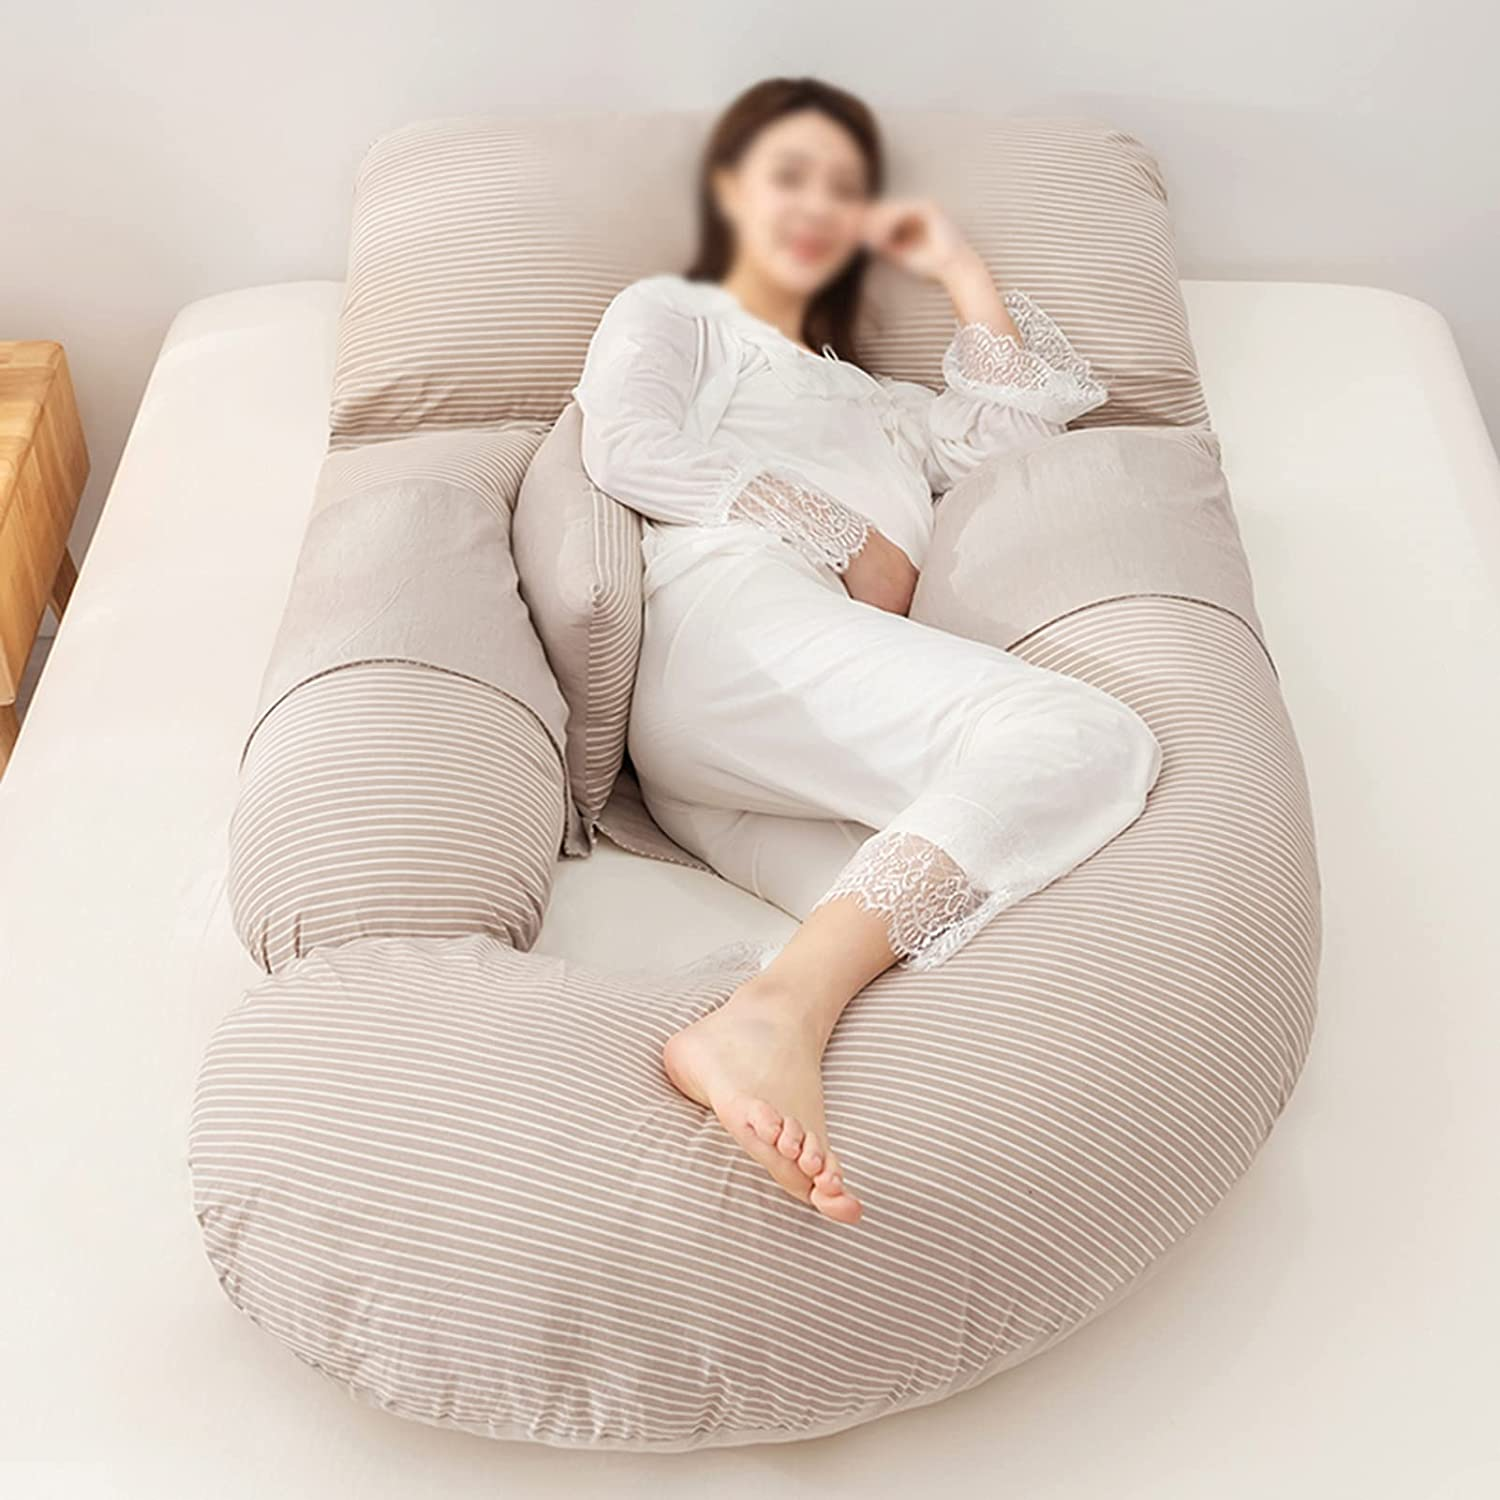 DUOLAEM Al sold out. Latest item Pillow for Pregnant Women High Side Suppo Waist